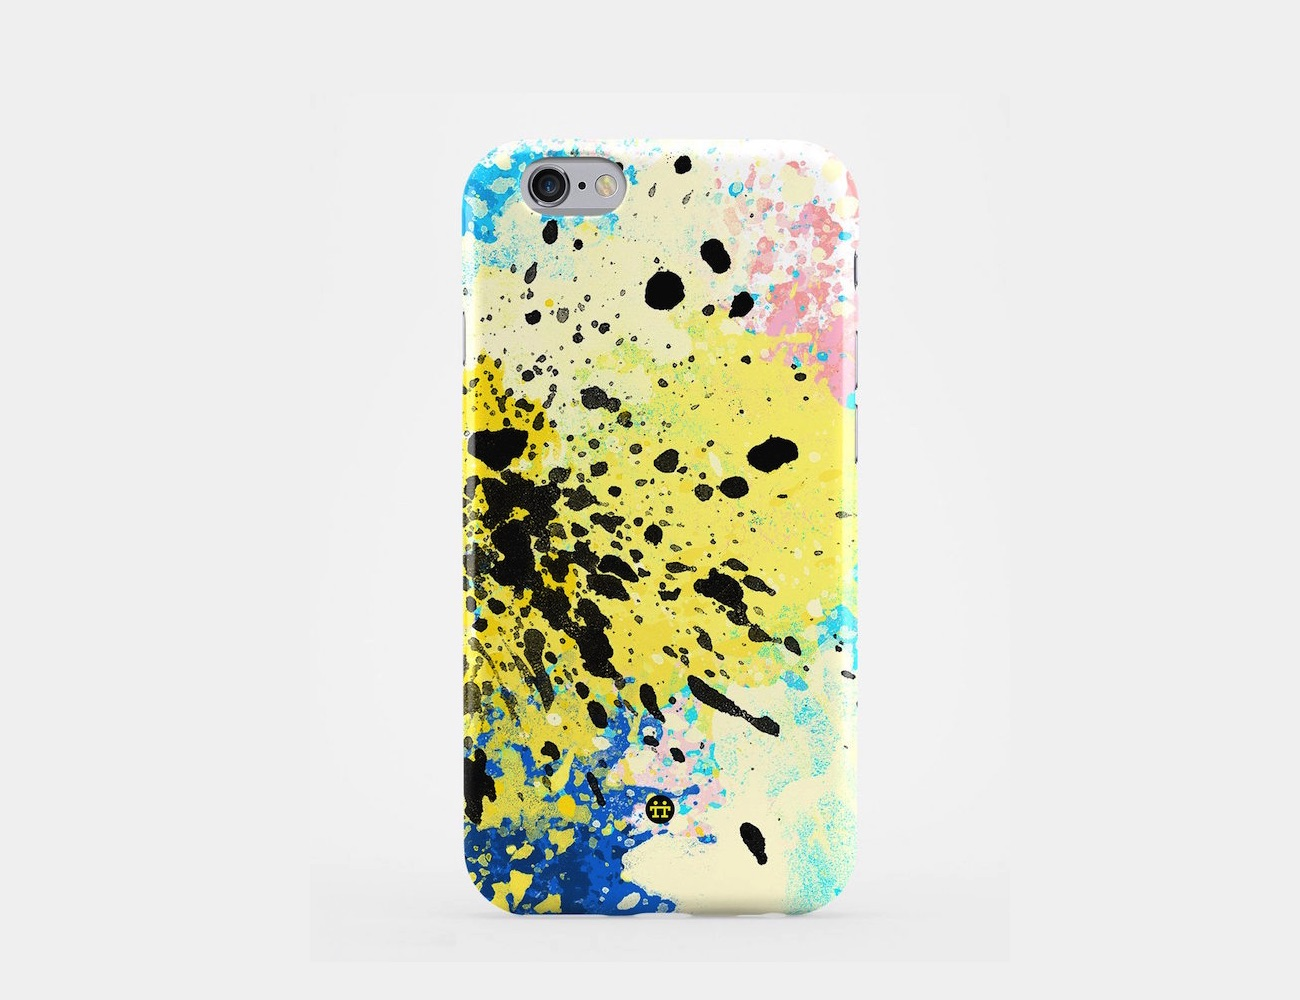 CMYK Splash Art Phone Case by Madotta